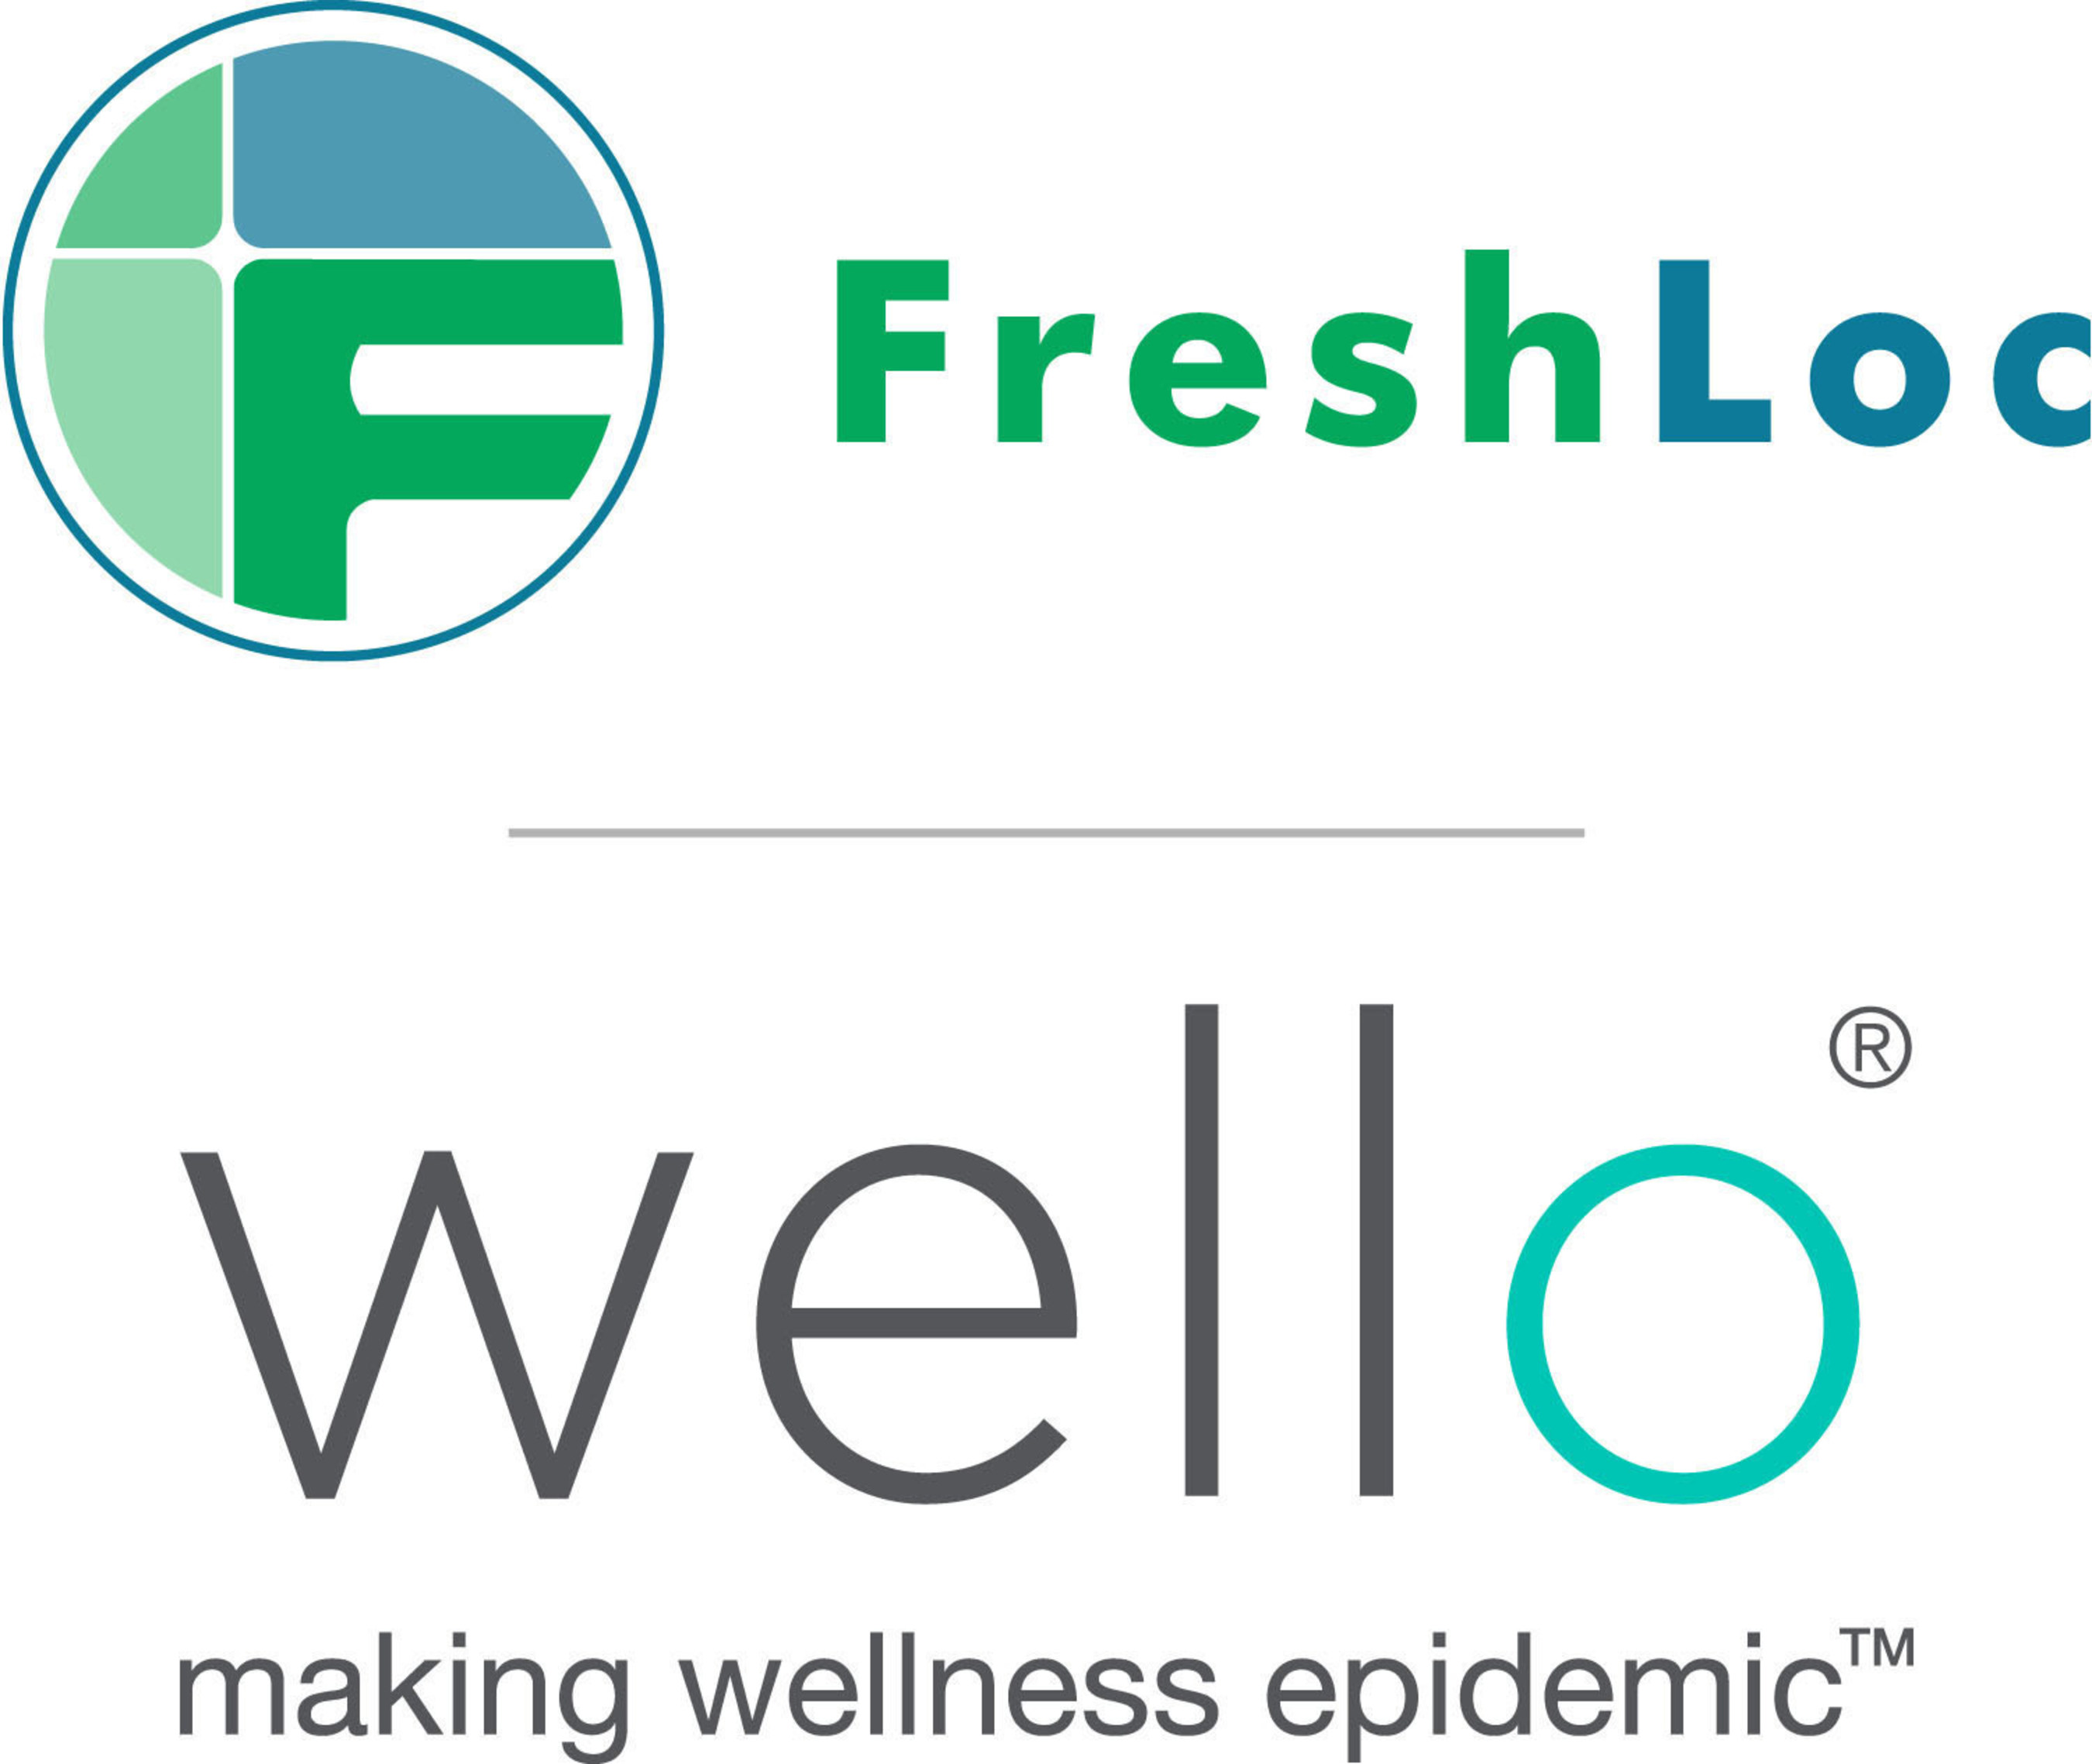 Now available for iPhones and iPads! FreshLoc's New App Enabling Healthcare Professionals to View Measurements at the Equipment